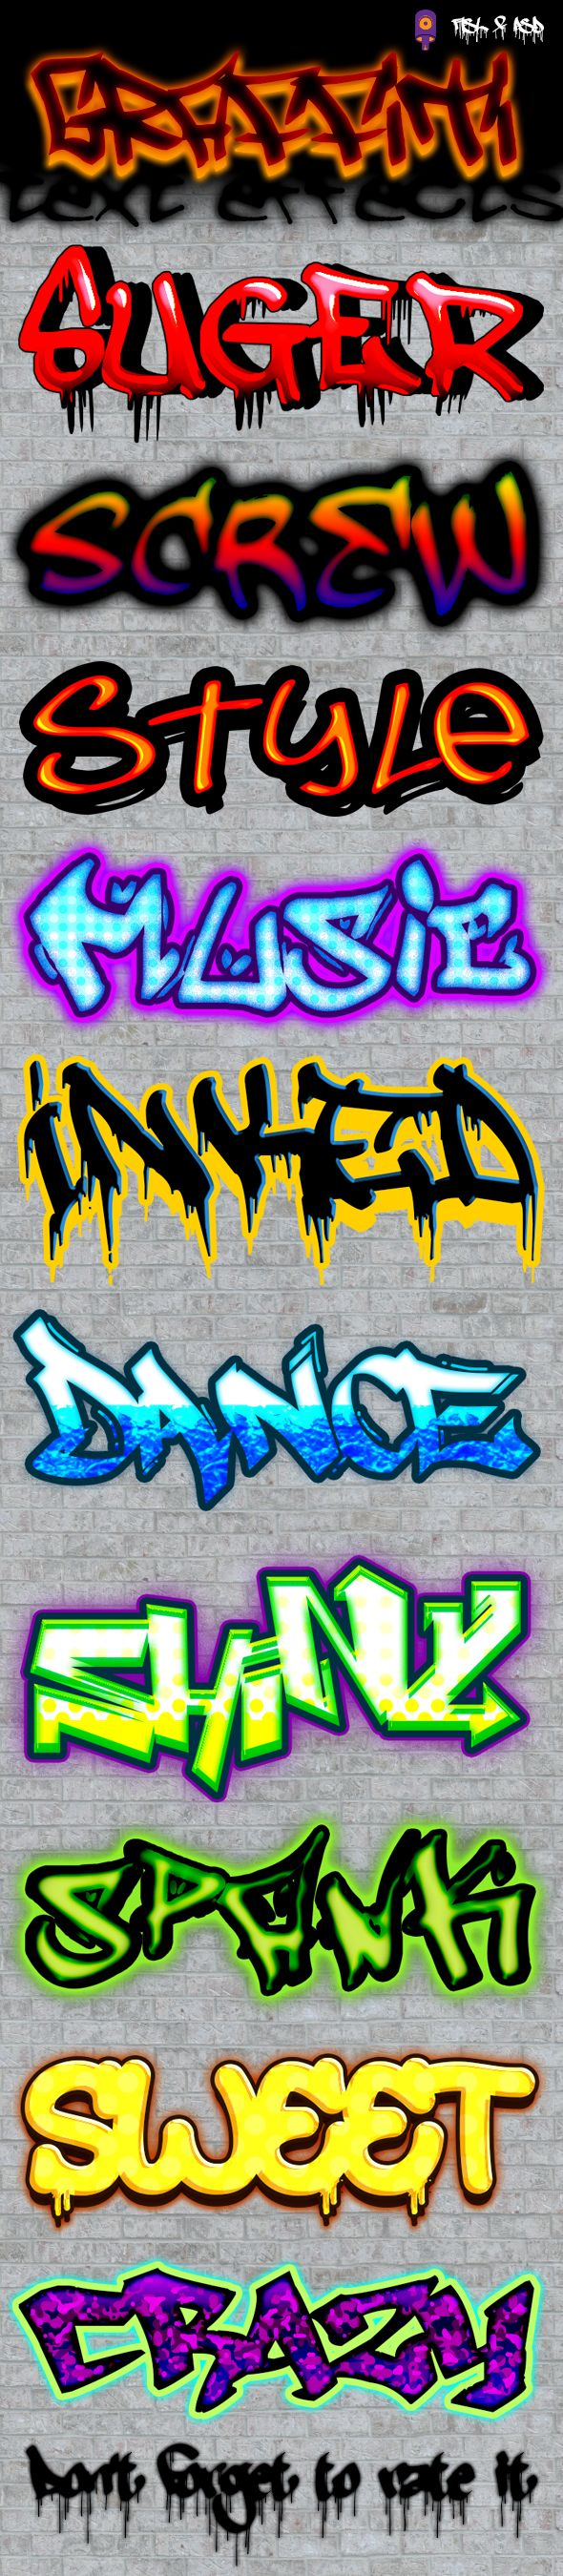 Graffiti Text Effects by Noctilucous 10 Graffiti text effects that can be used in logo, banners, flyers, websites, brochure or any kind of decoration purpose. Features